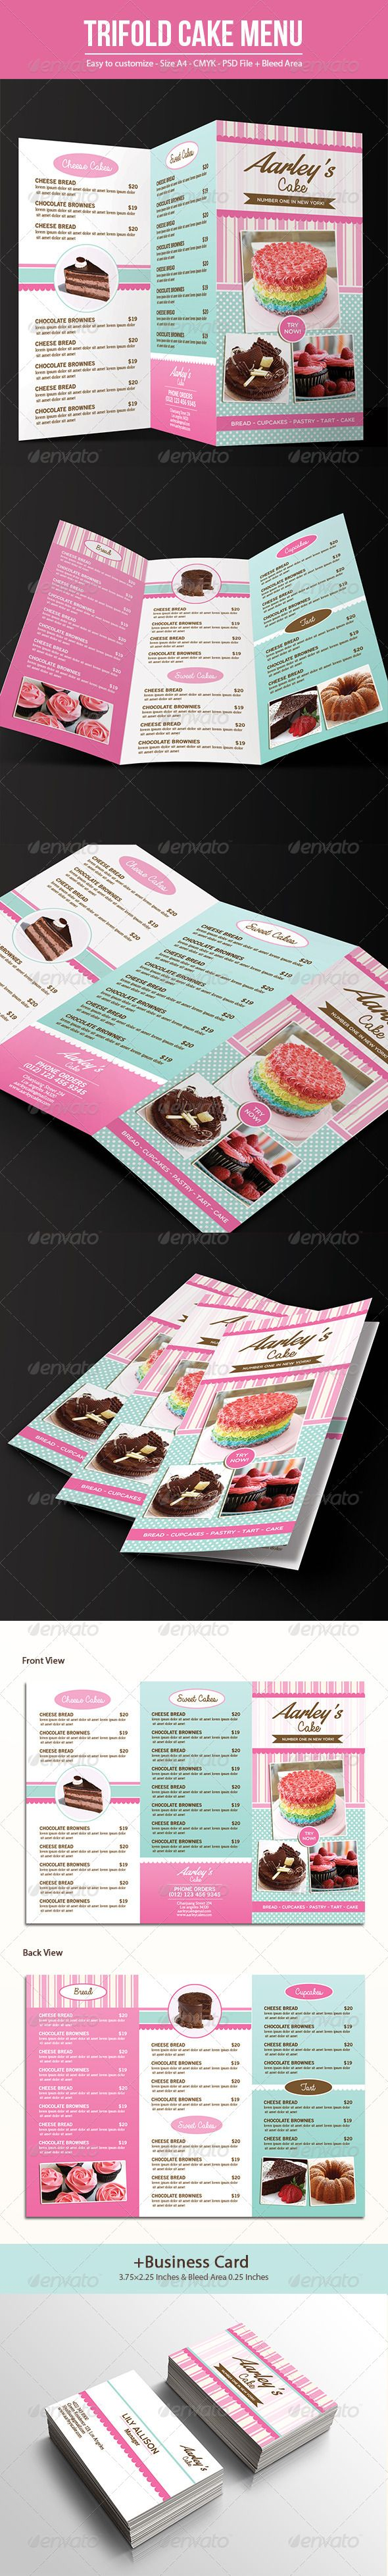 Trifold Cake Menu + Business Card Template #design #speisekarte Download: http://graphicriver.net/item/trifold-cake-menu-business-card/7642416?ref=ksioks